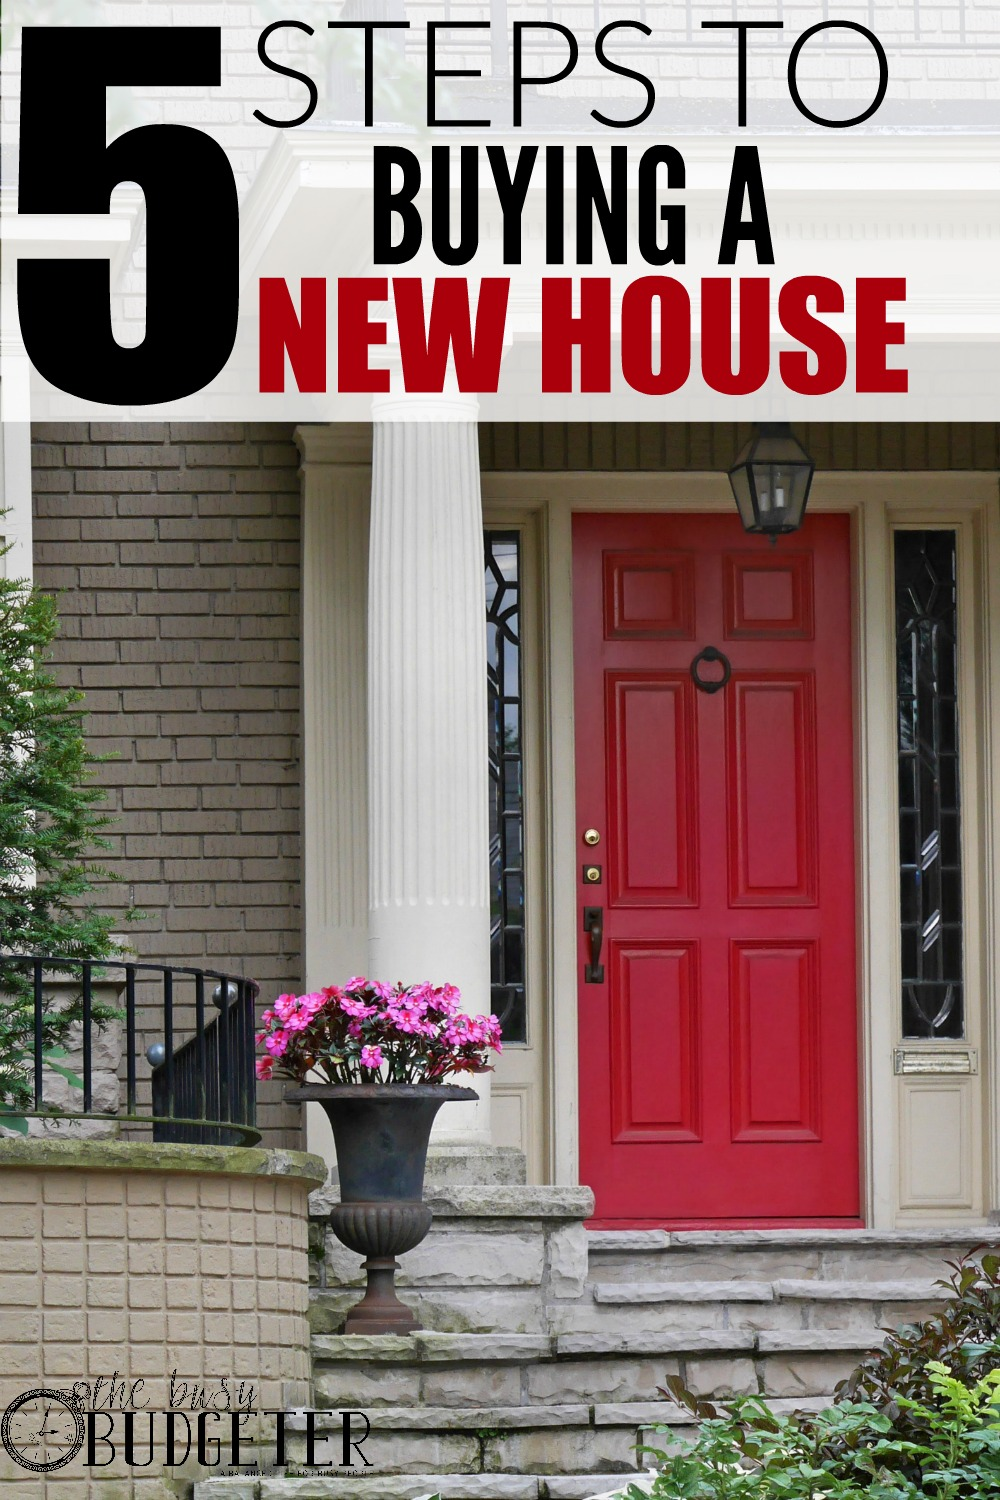 Steps To Buying A New House This Post Was Exactly What I Needed To